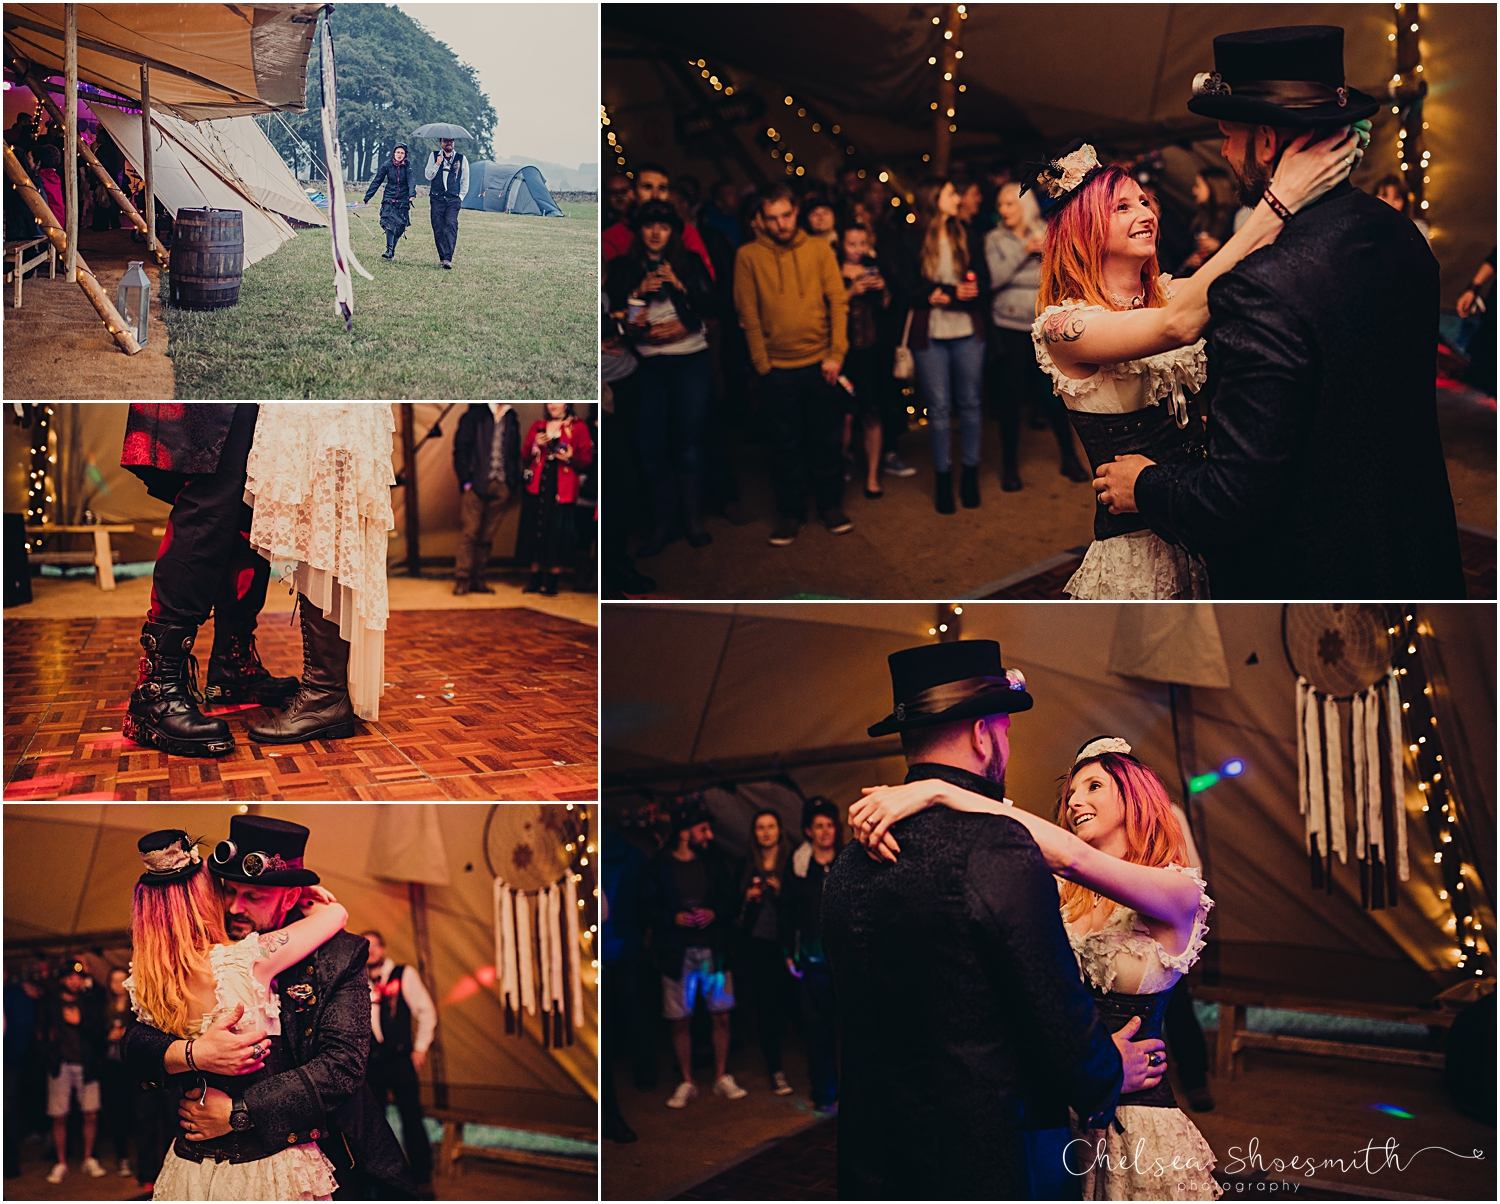 April & Rien Wedding - Chelsea Shoesmith Photoraphy00478